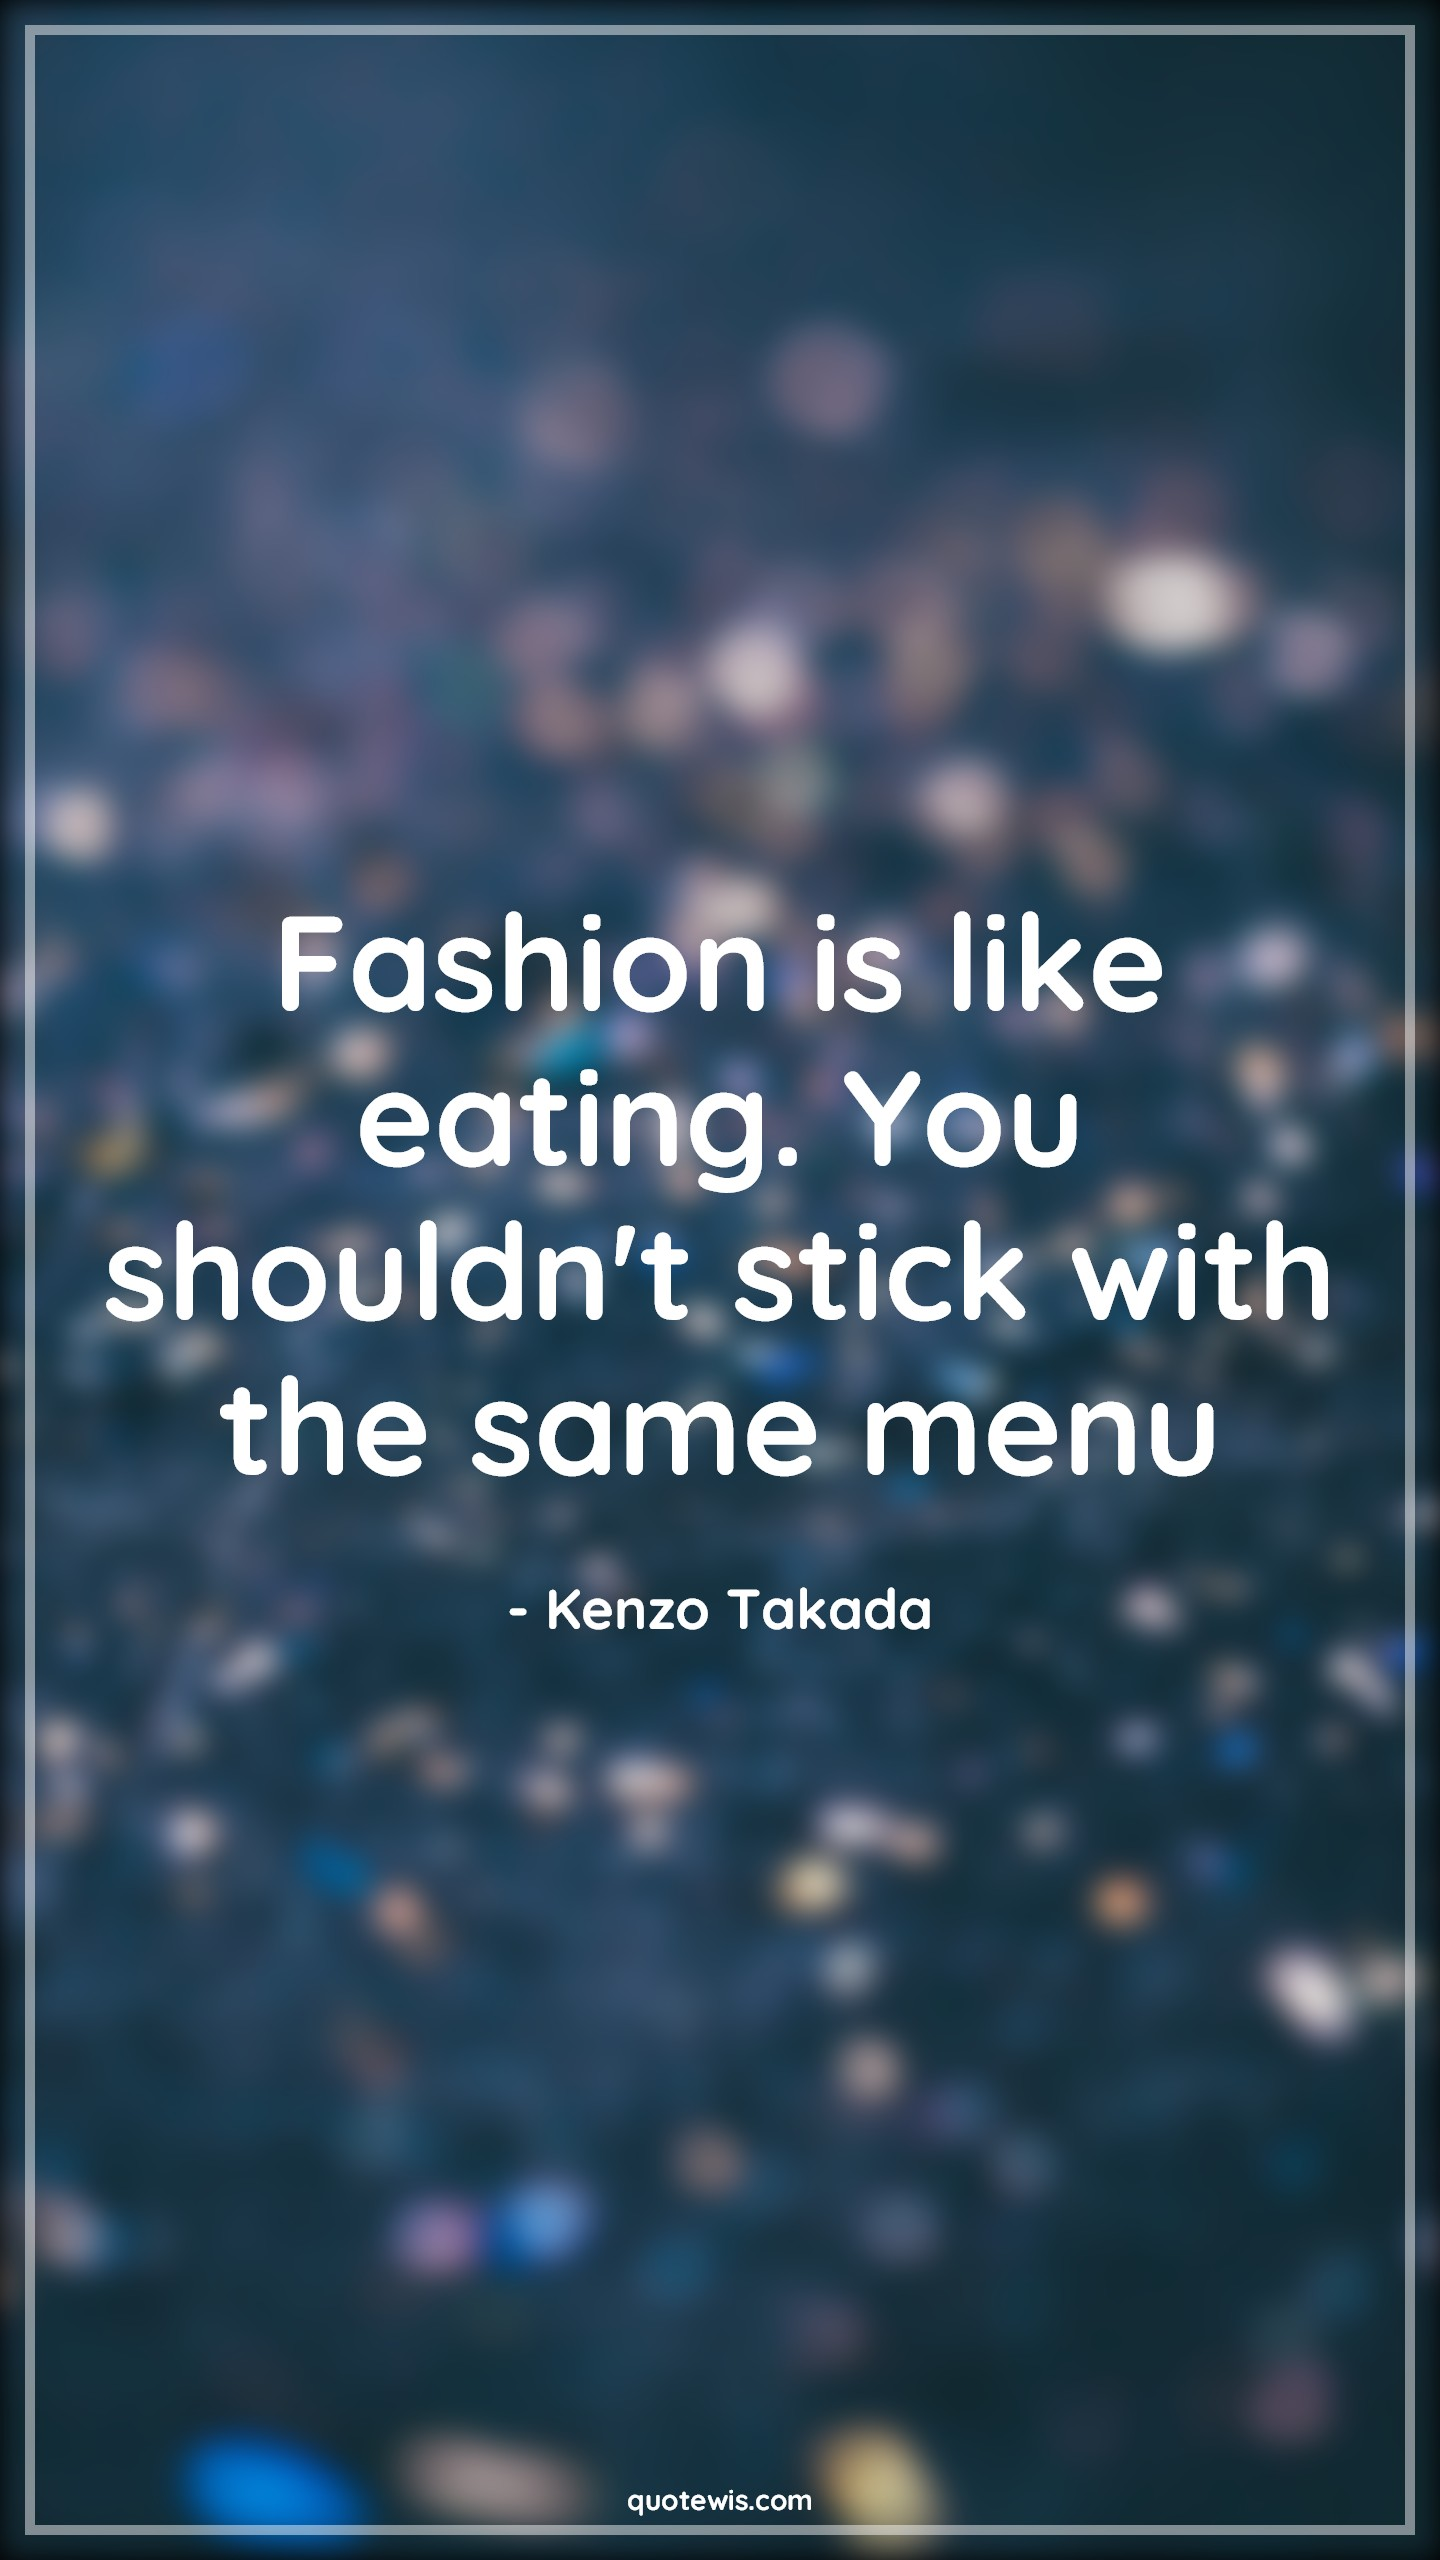 Fashion is like eating. You shouldn't stick with the same menu